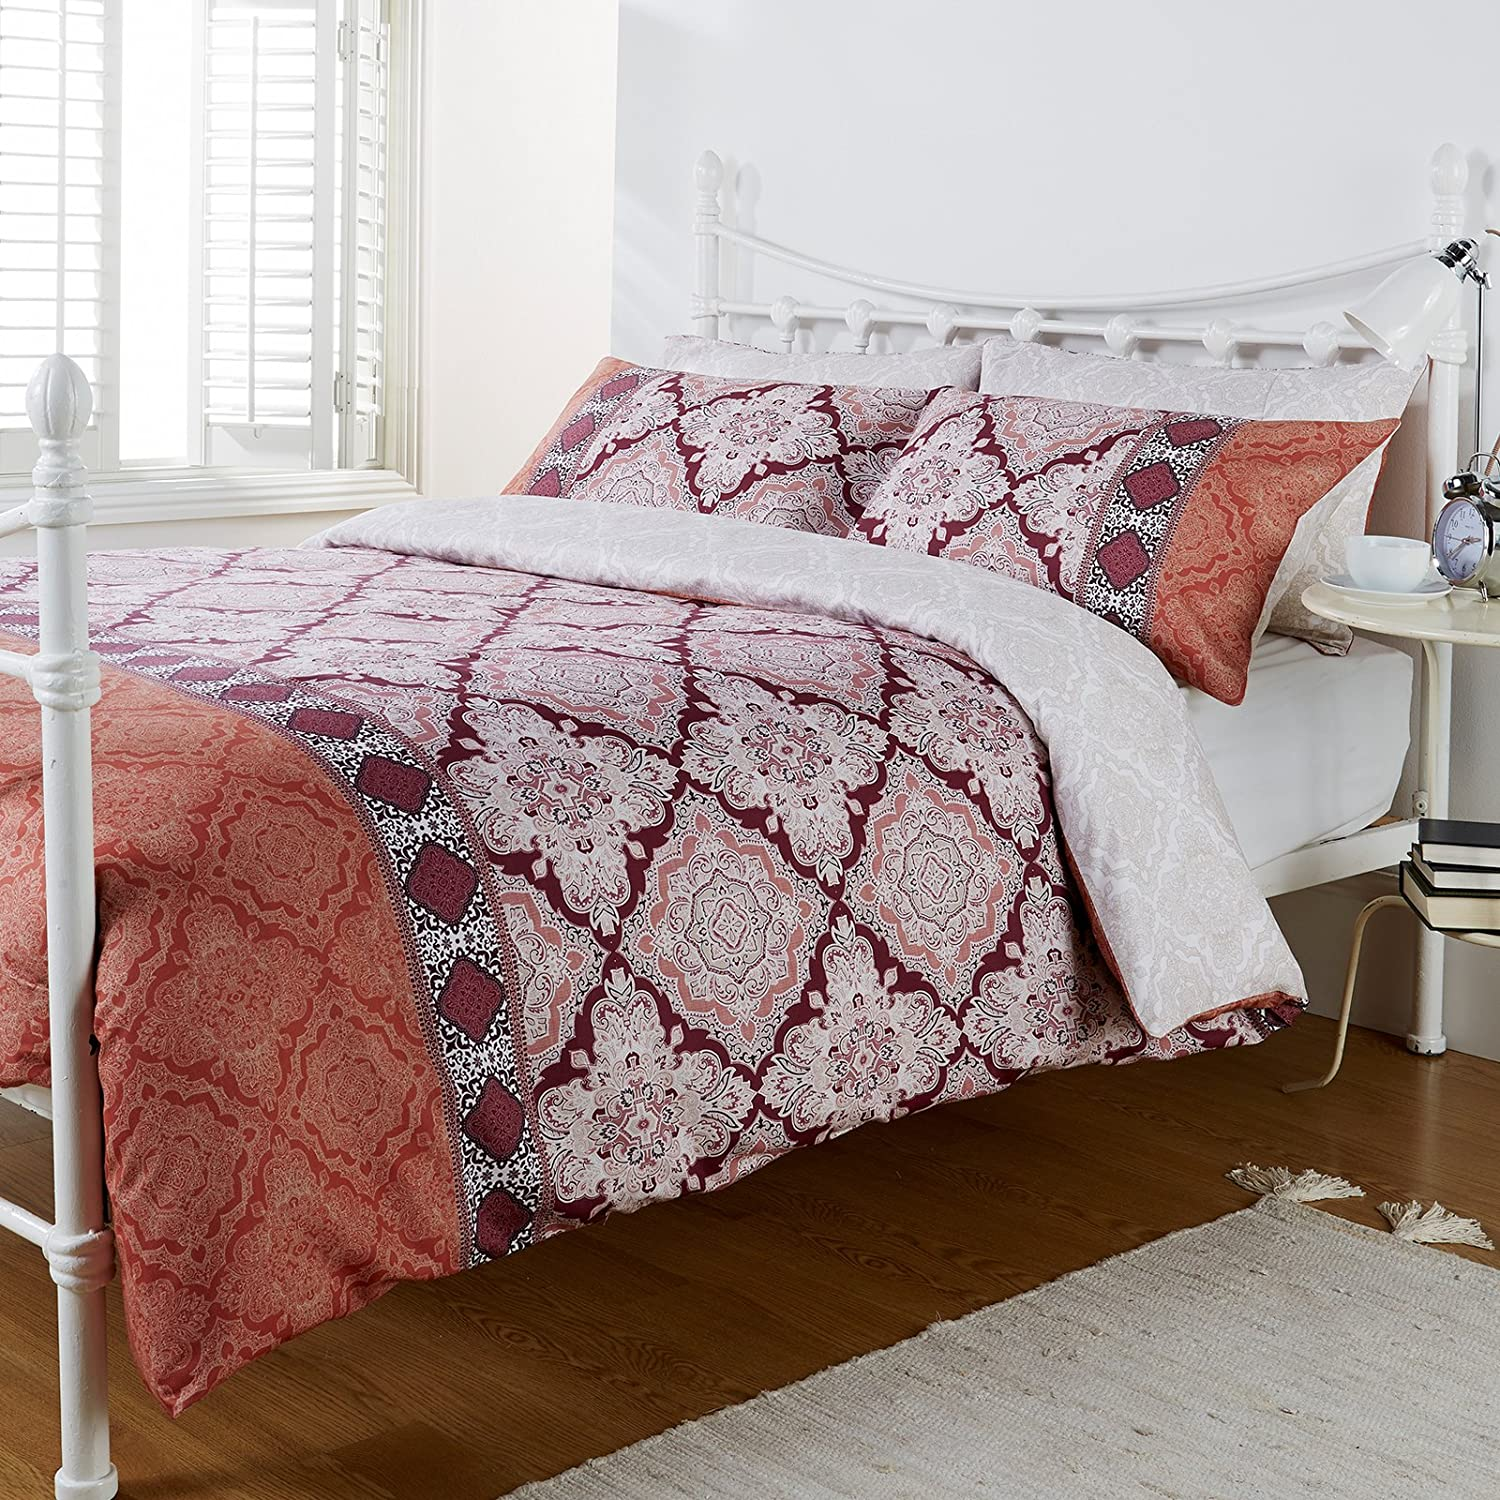 Hummingbird Bed Linen Part - 45: Hummingbird Agadir Spice Tile Ethnic Moroccan Double Duvet Quilt Cover  Bedding Set: Amazon.co.uk: Kitchen U0026 Home